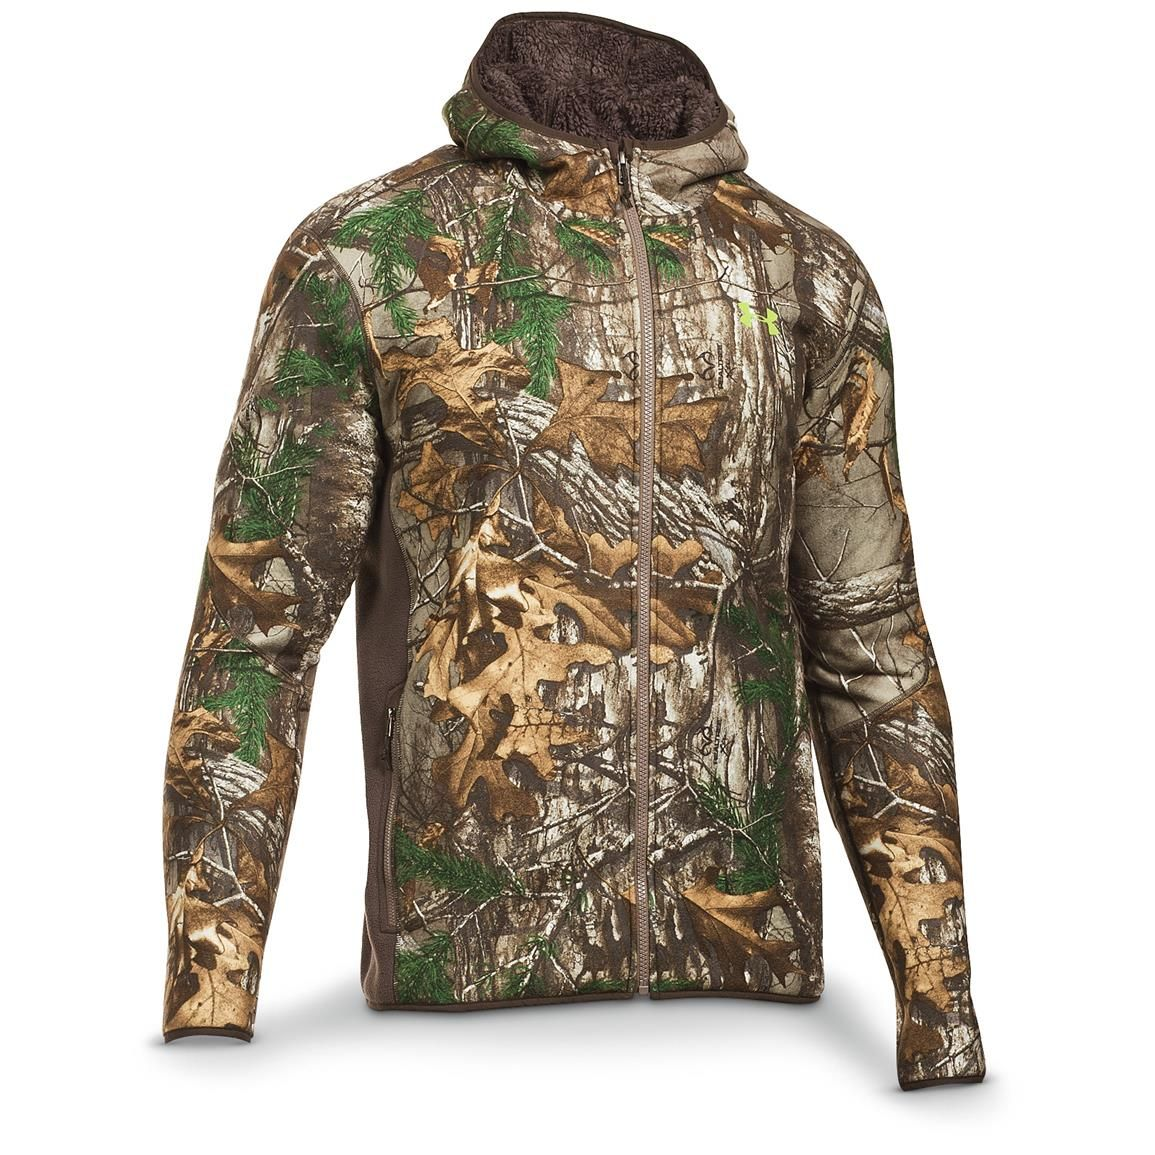 Under Armour Men's Stealth Hoodie, Velocity / Realtree